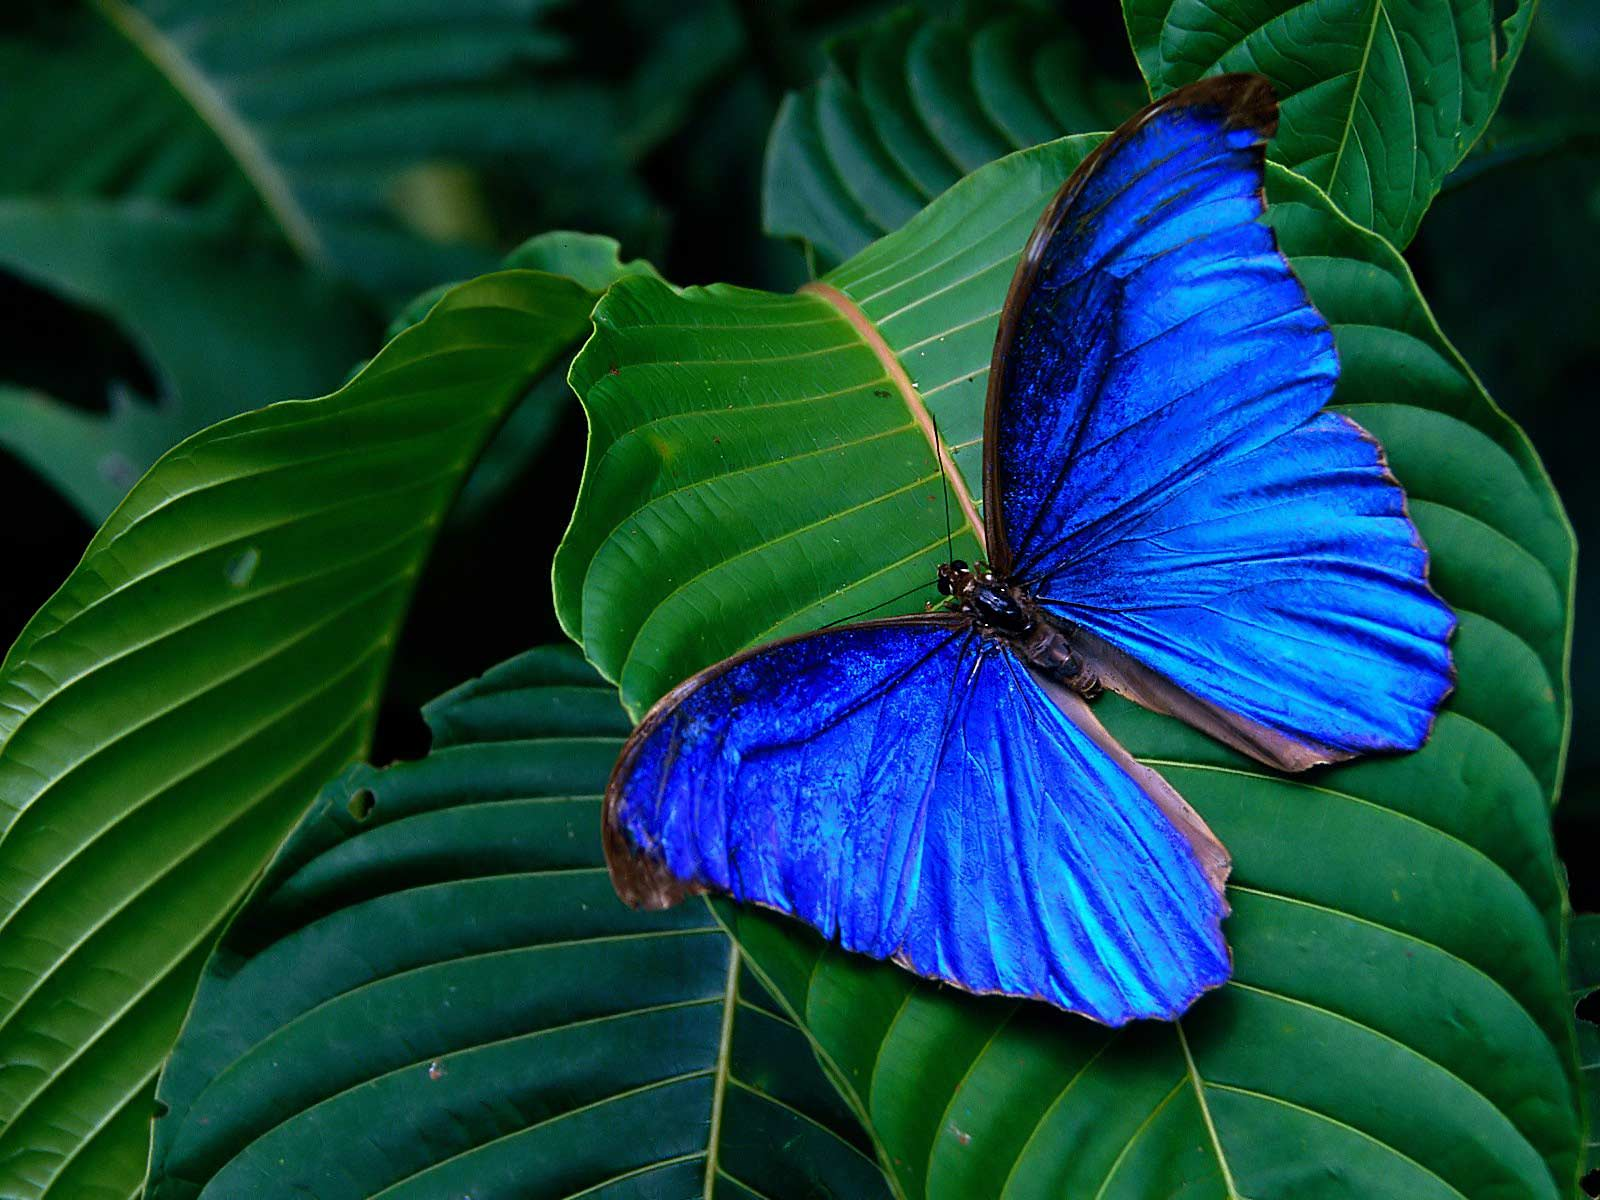 wallpapers background: butterfly hd wallpaper |butterfly 3d wallpapers